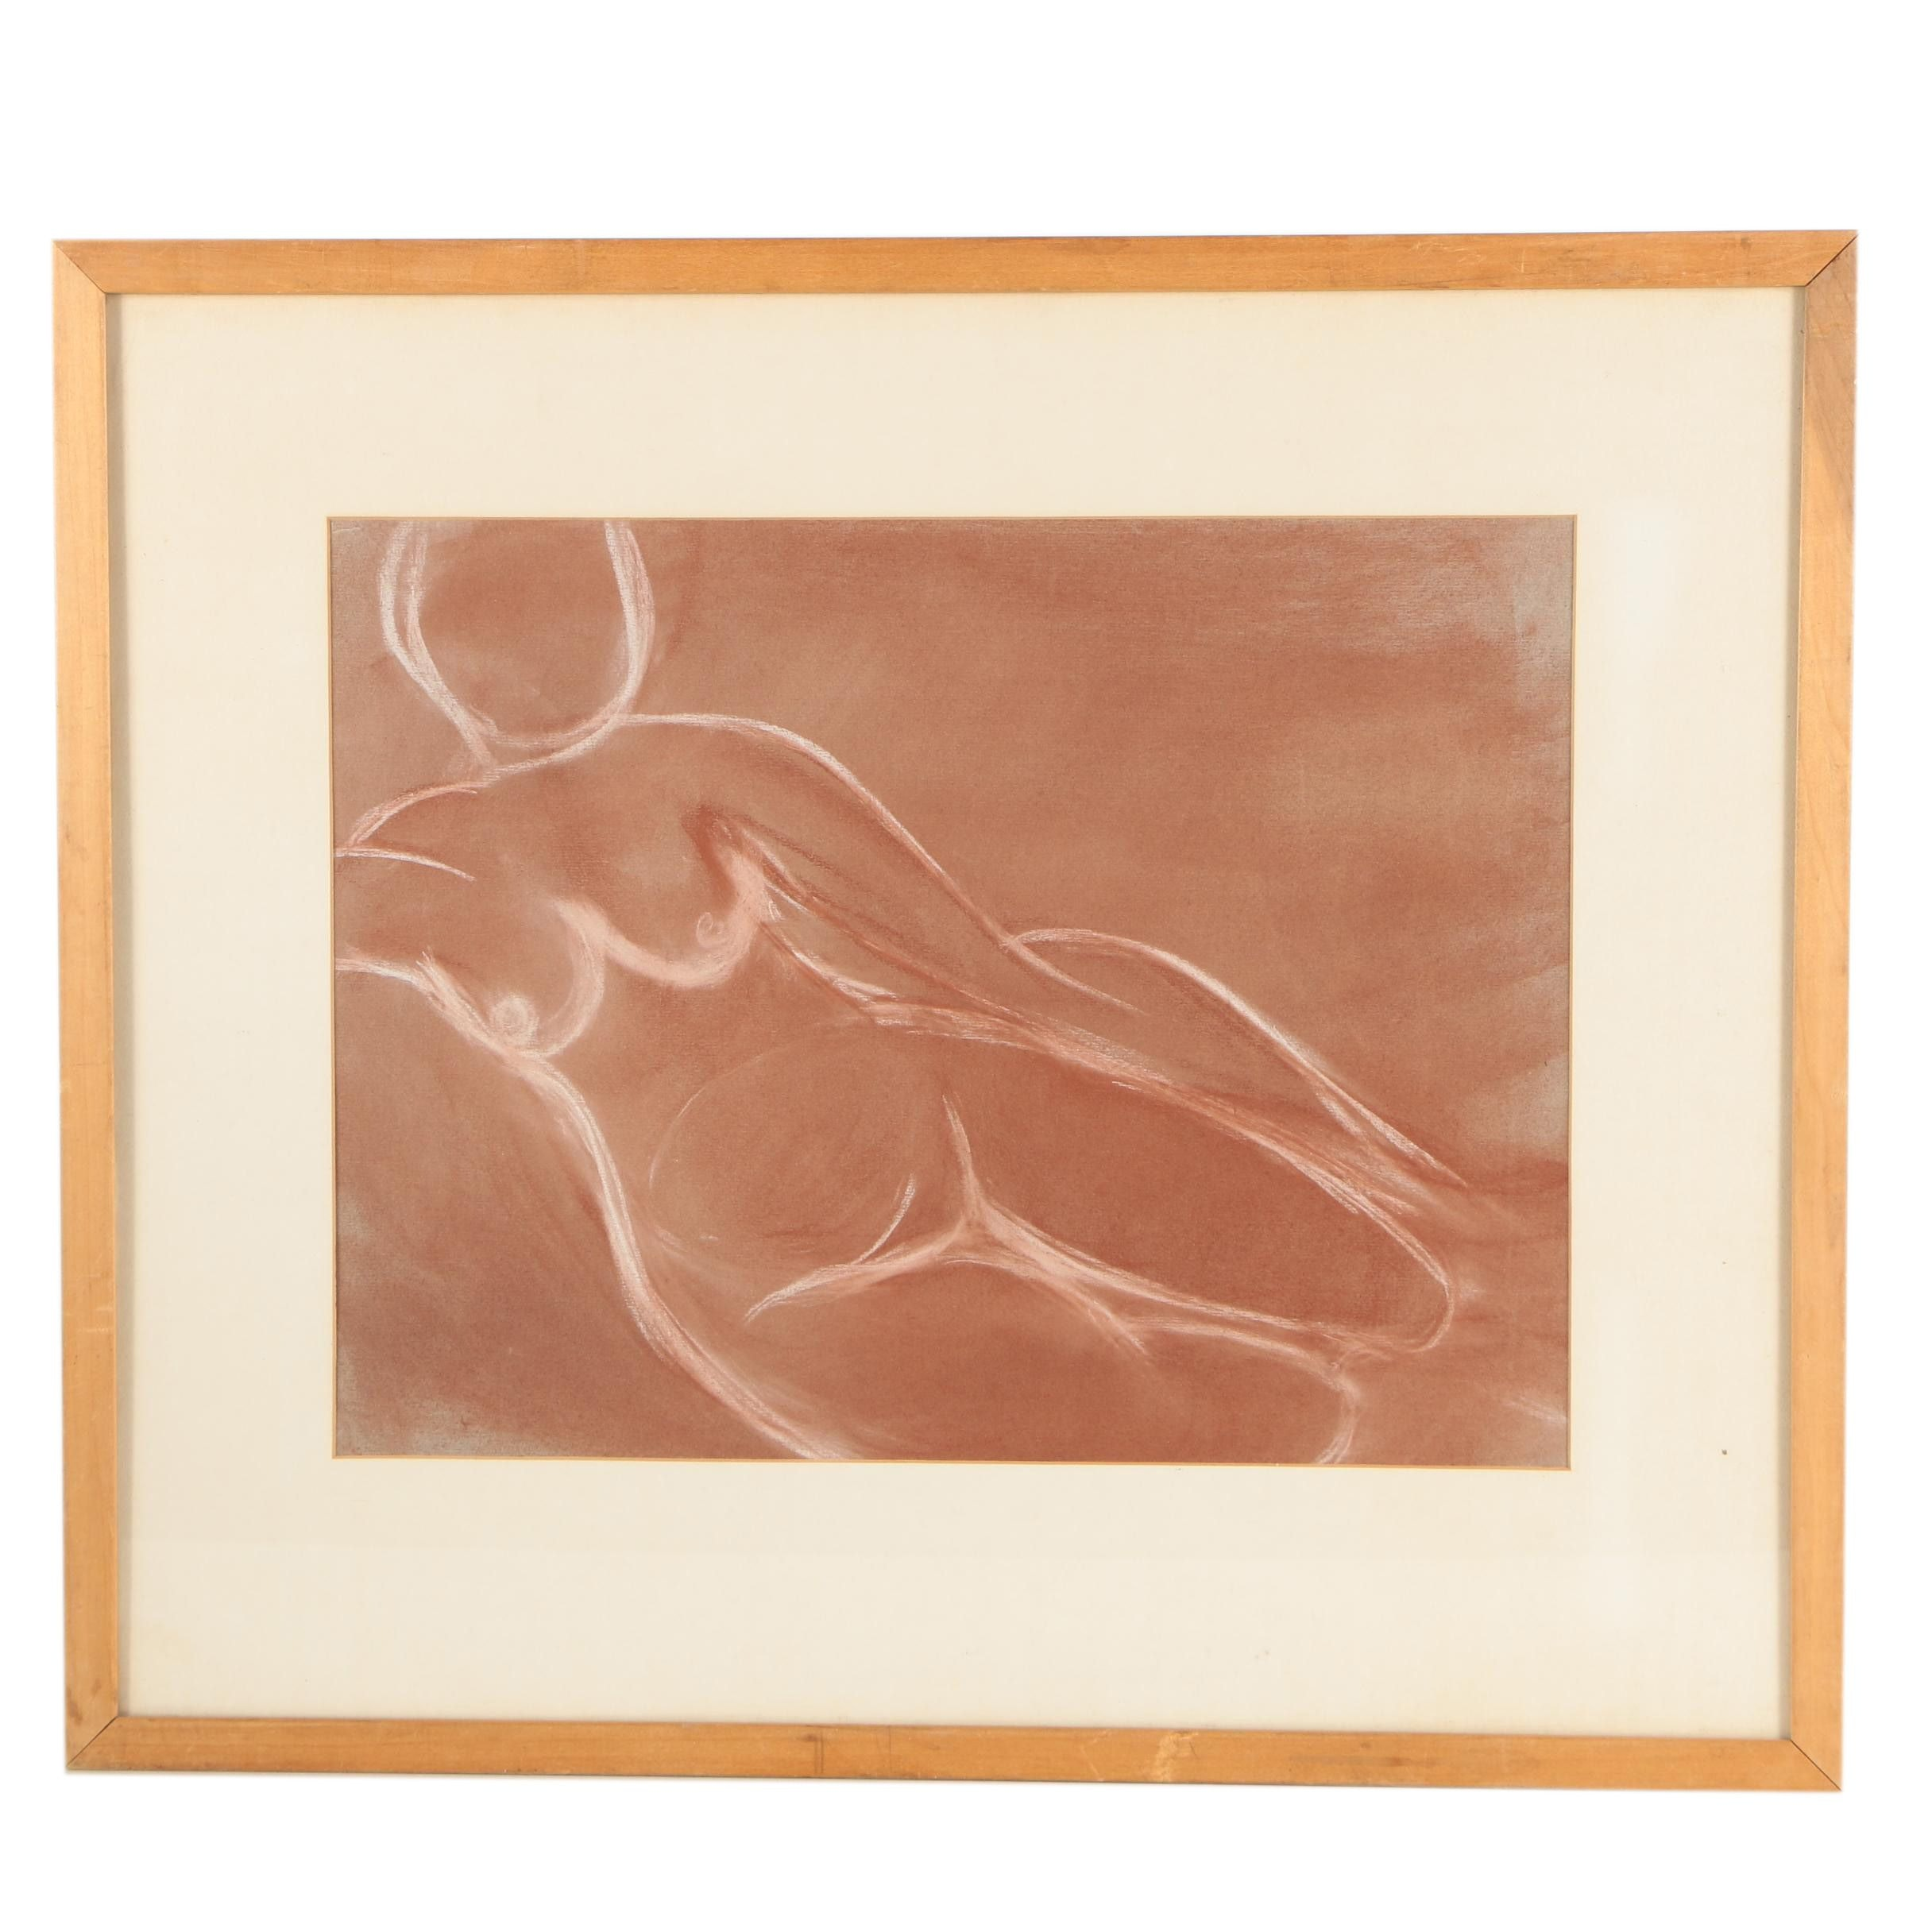 Chalk Drawing of a Nude Figure